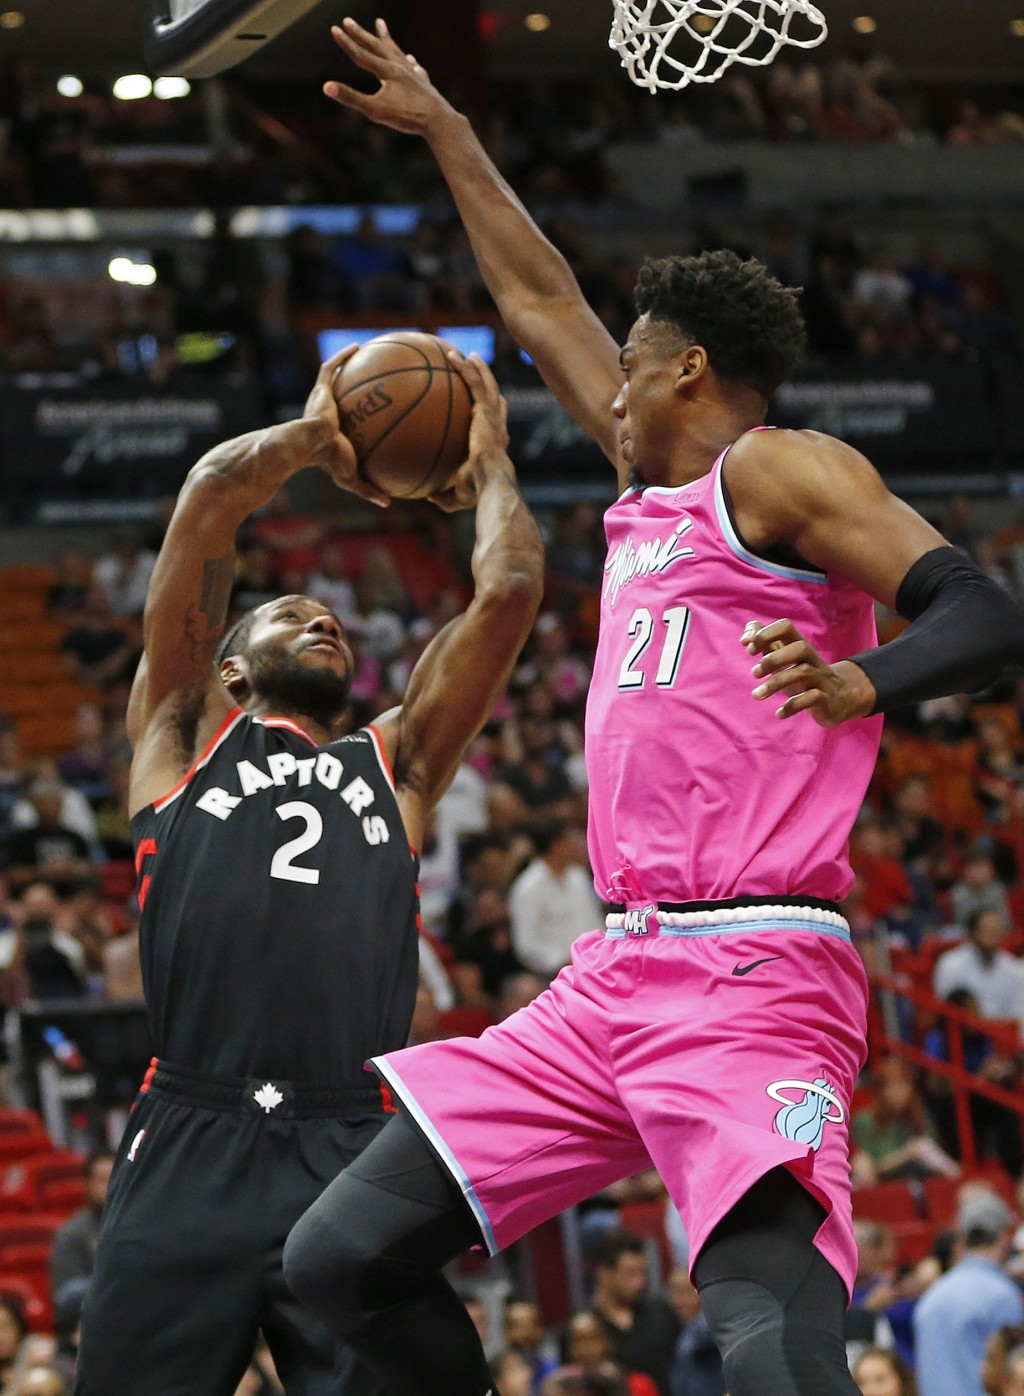 Miami Heat center Hassan Whiteside (21) defends against Toronto Raptors forward Kawhi Leonard (2) as he shoots the ball during the first half of an NB...